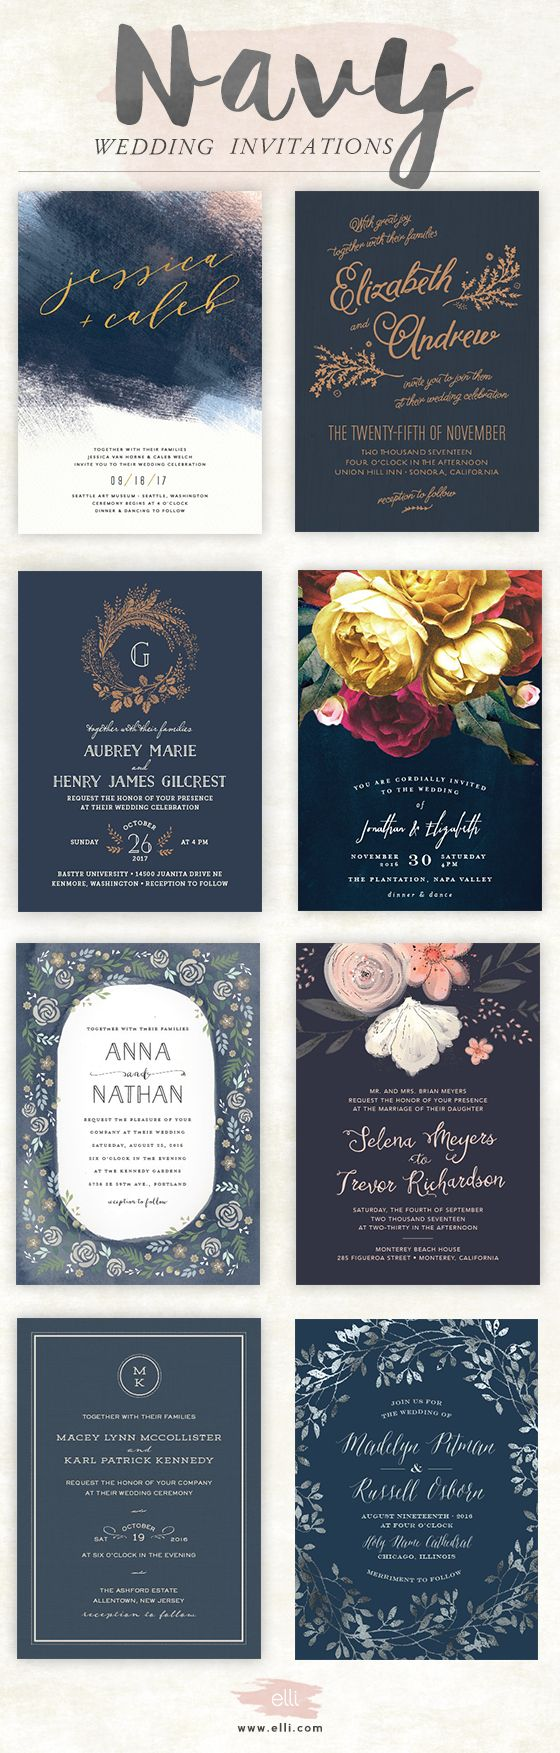 business event invitation templates%0A Now trending  navy wedding invitations from Elli com